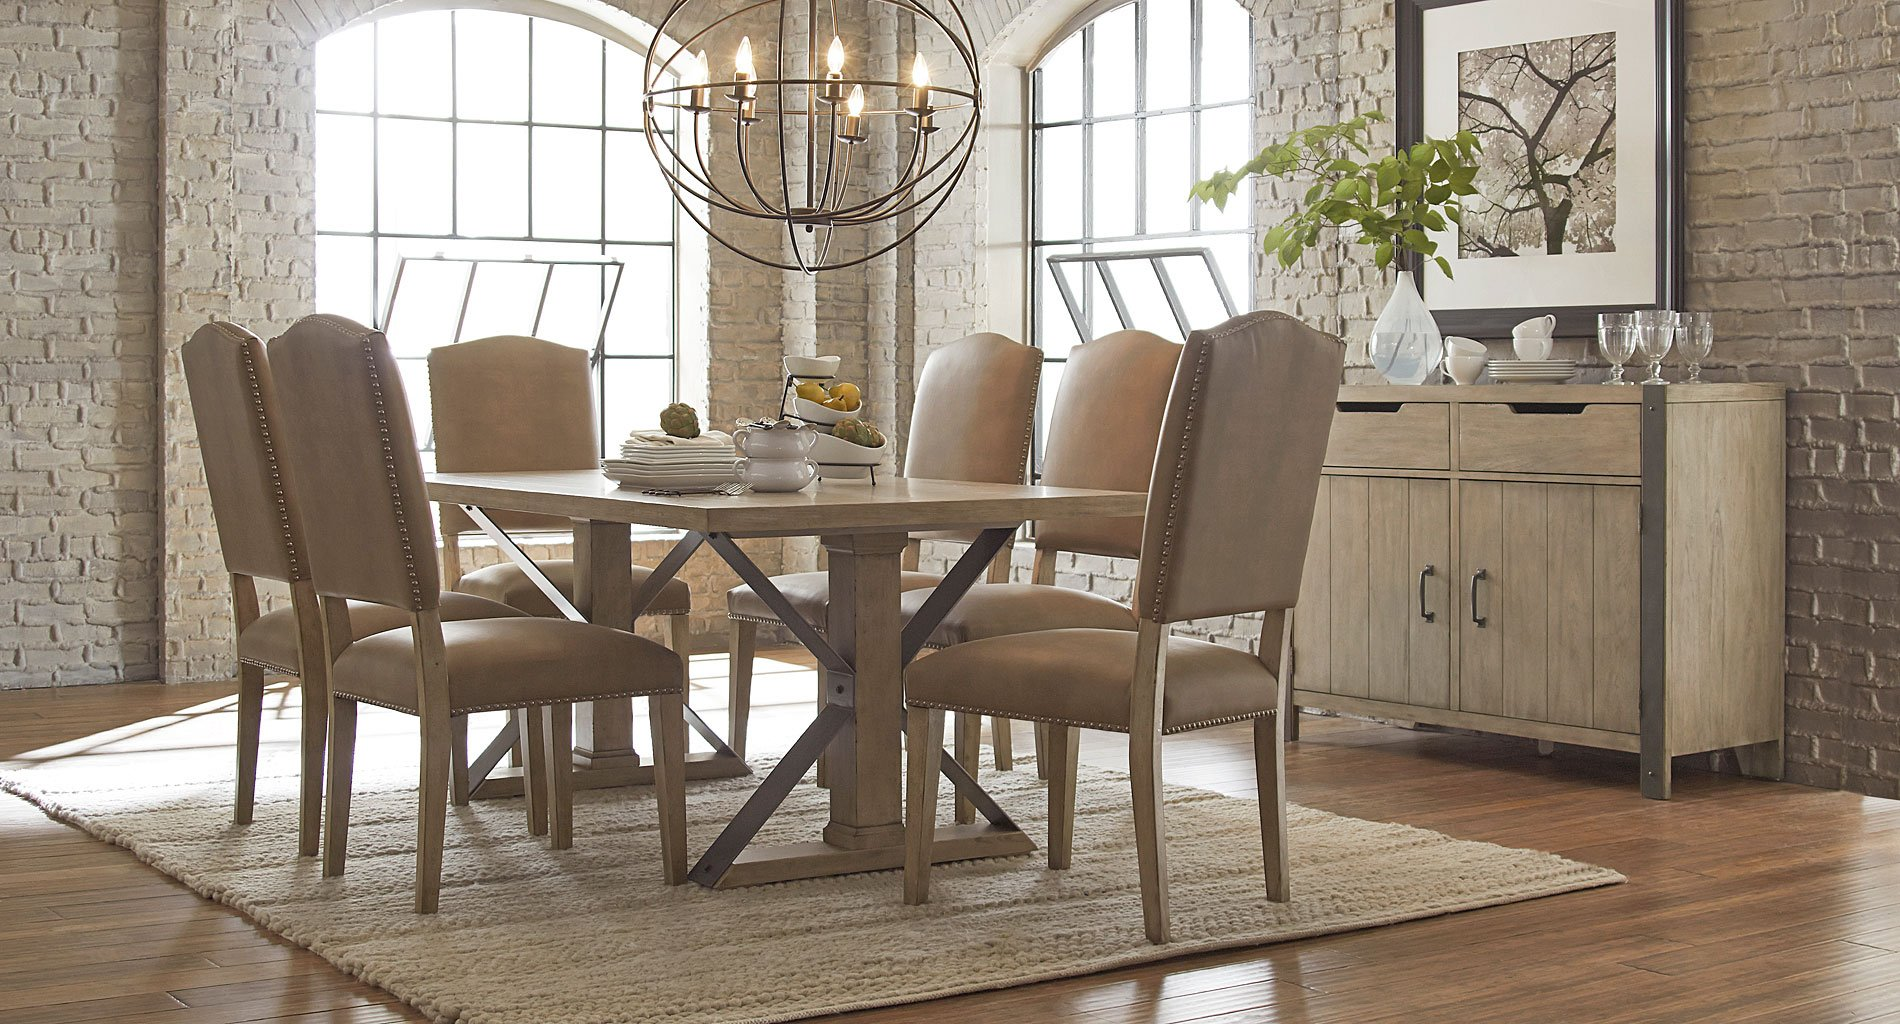 Shenandoah dining room set